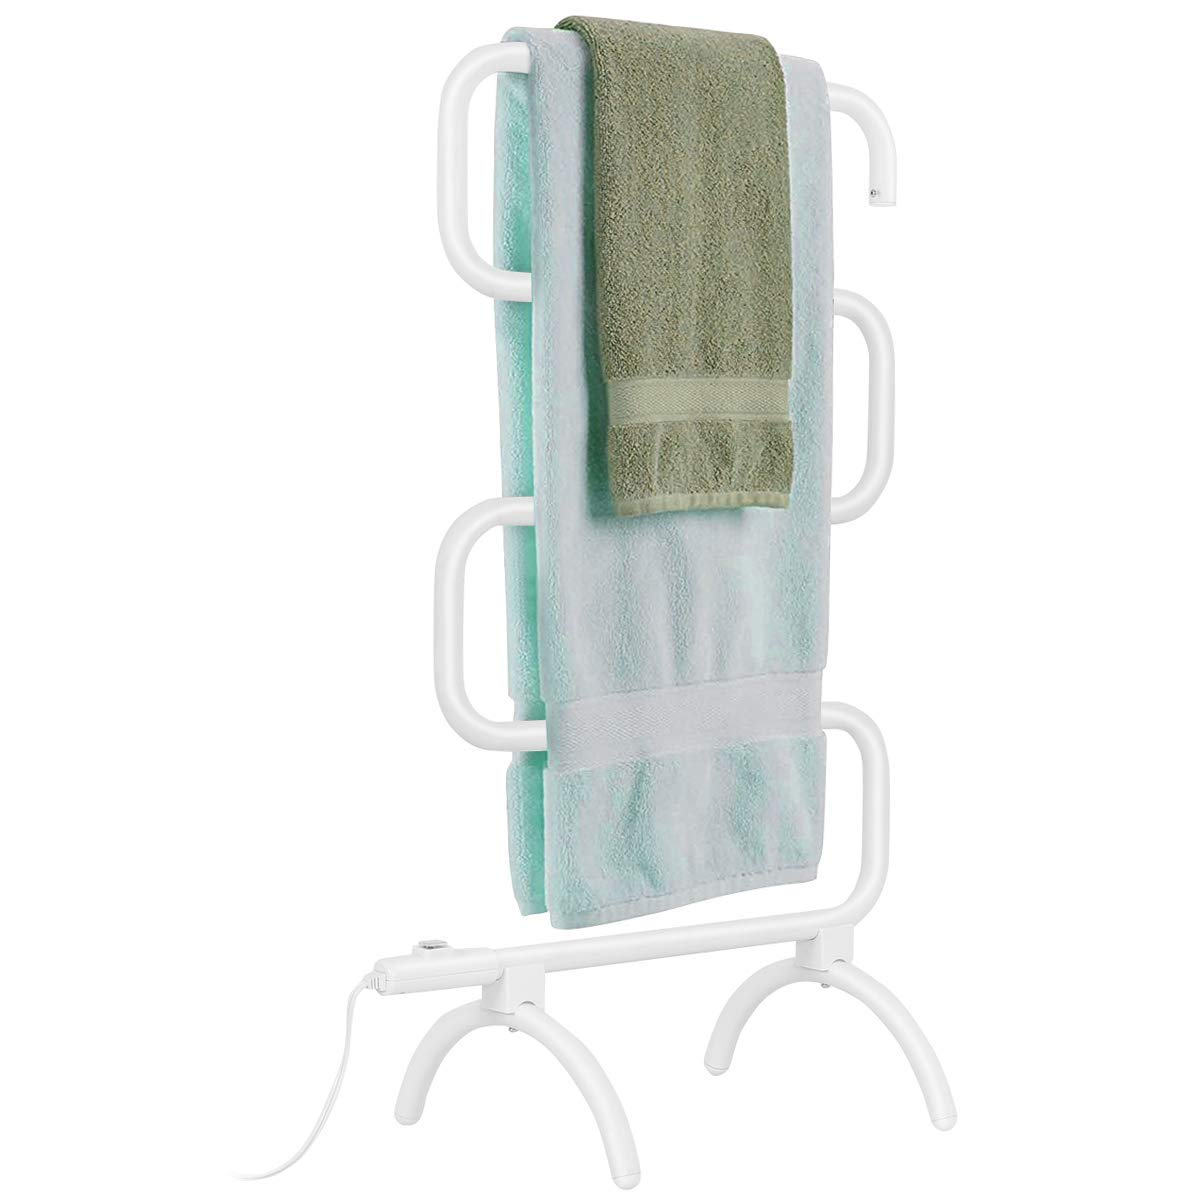 Tangkula Towel Warmer, Home Bathroom 100W Electric 5-Bar Towel Drying Rack, Freestanding and Wall Mounted Design Towel Hanger, Towel Heater, White